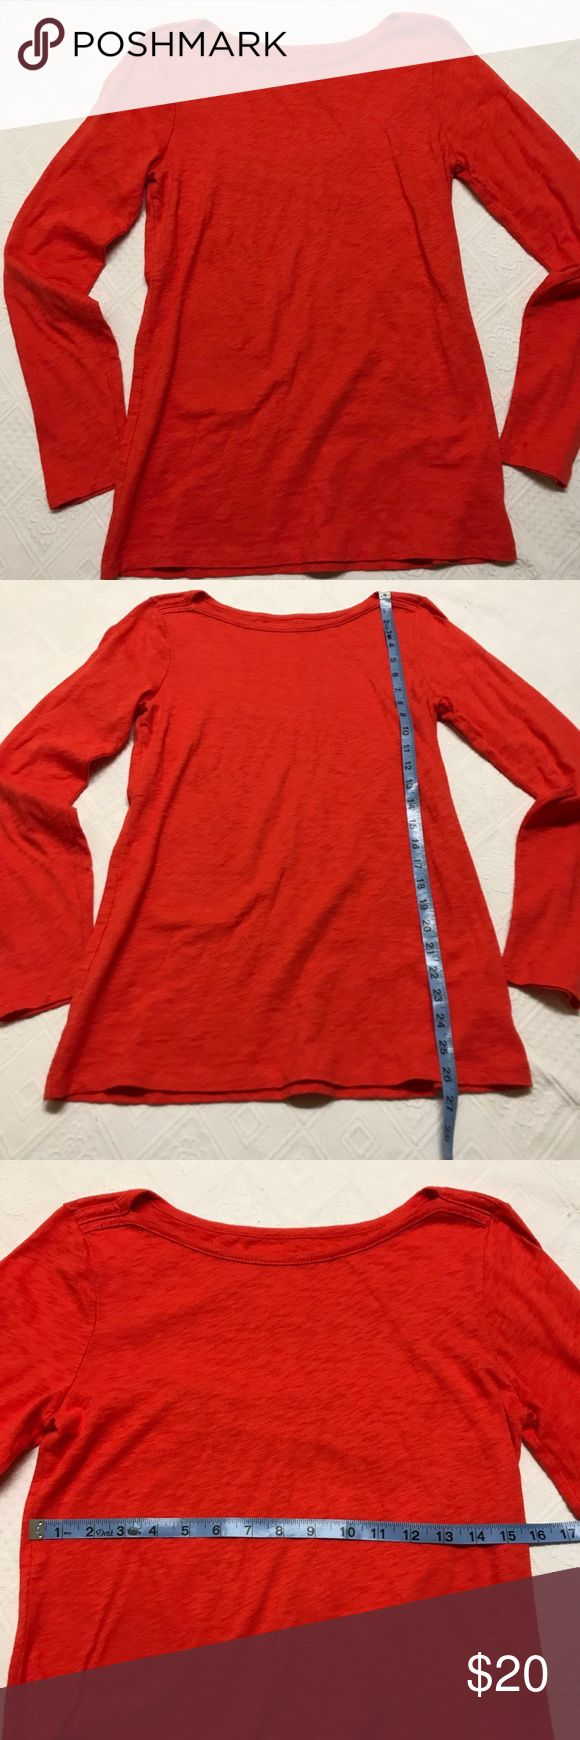 J Crew Artist T Medium Coral Shirt Long Sleeve Like new, no flaws Deep coral colors J. Crew  Artist T J. Crew Factory Tops Tees - Long Sleeve